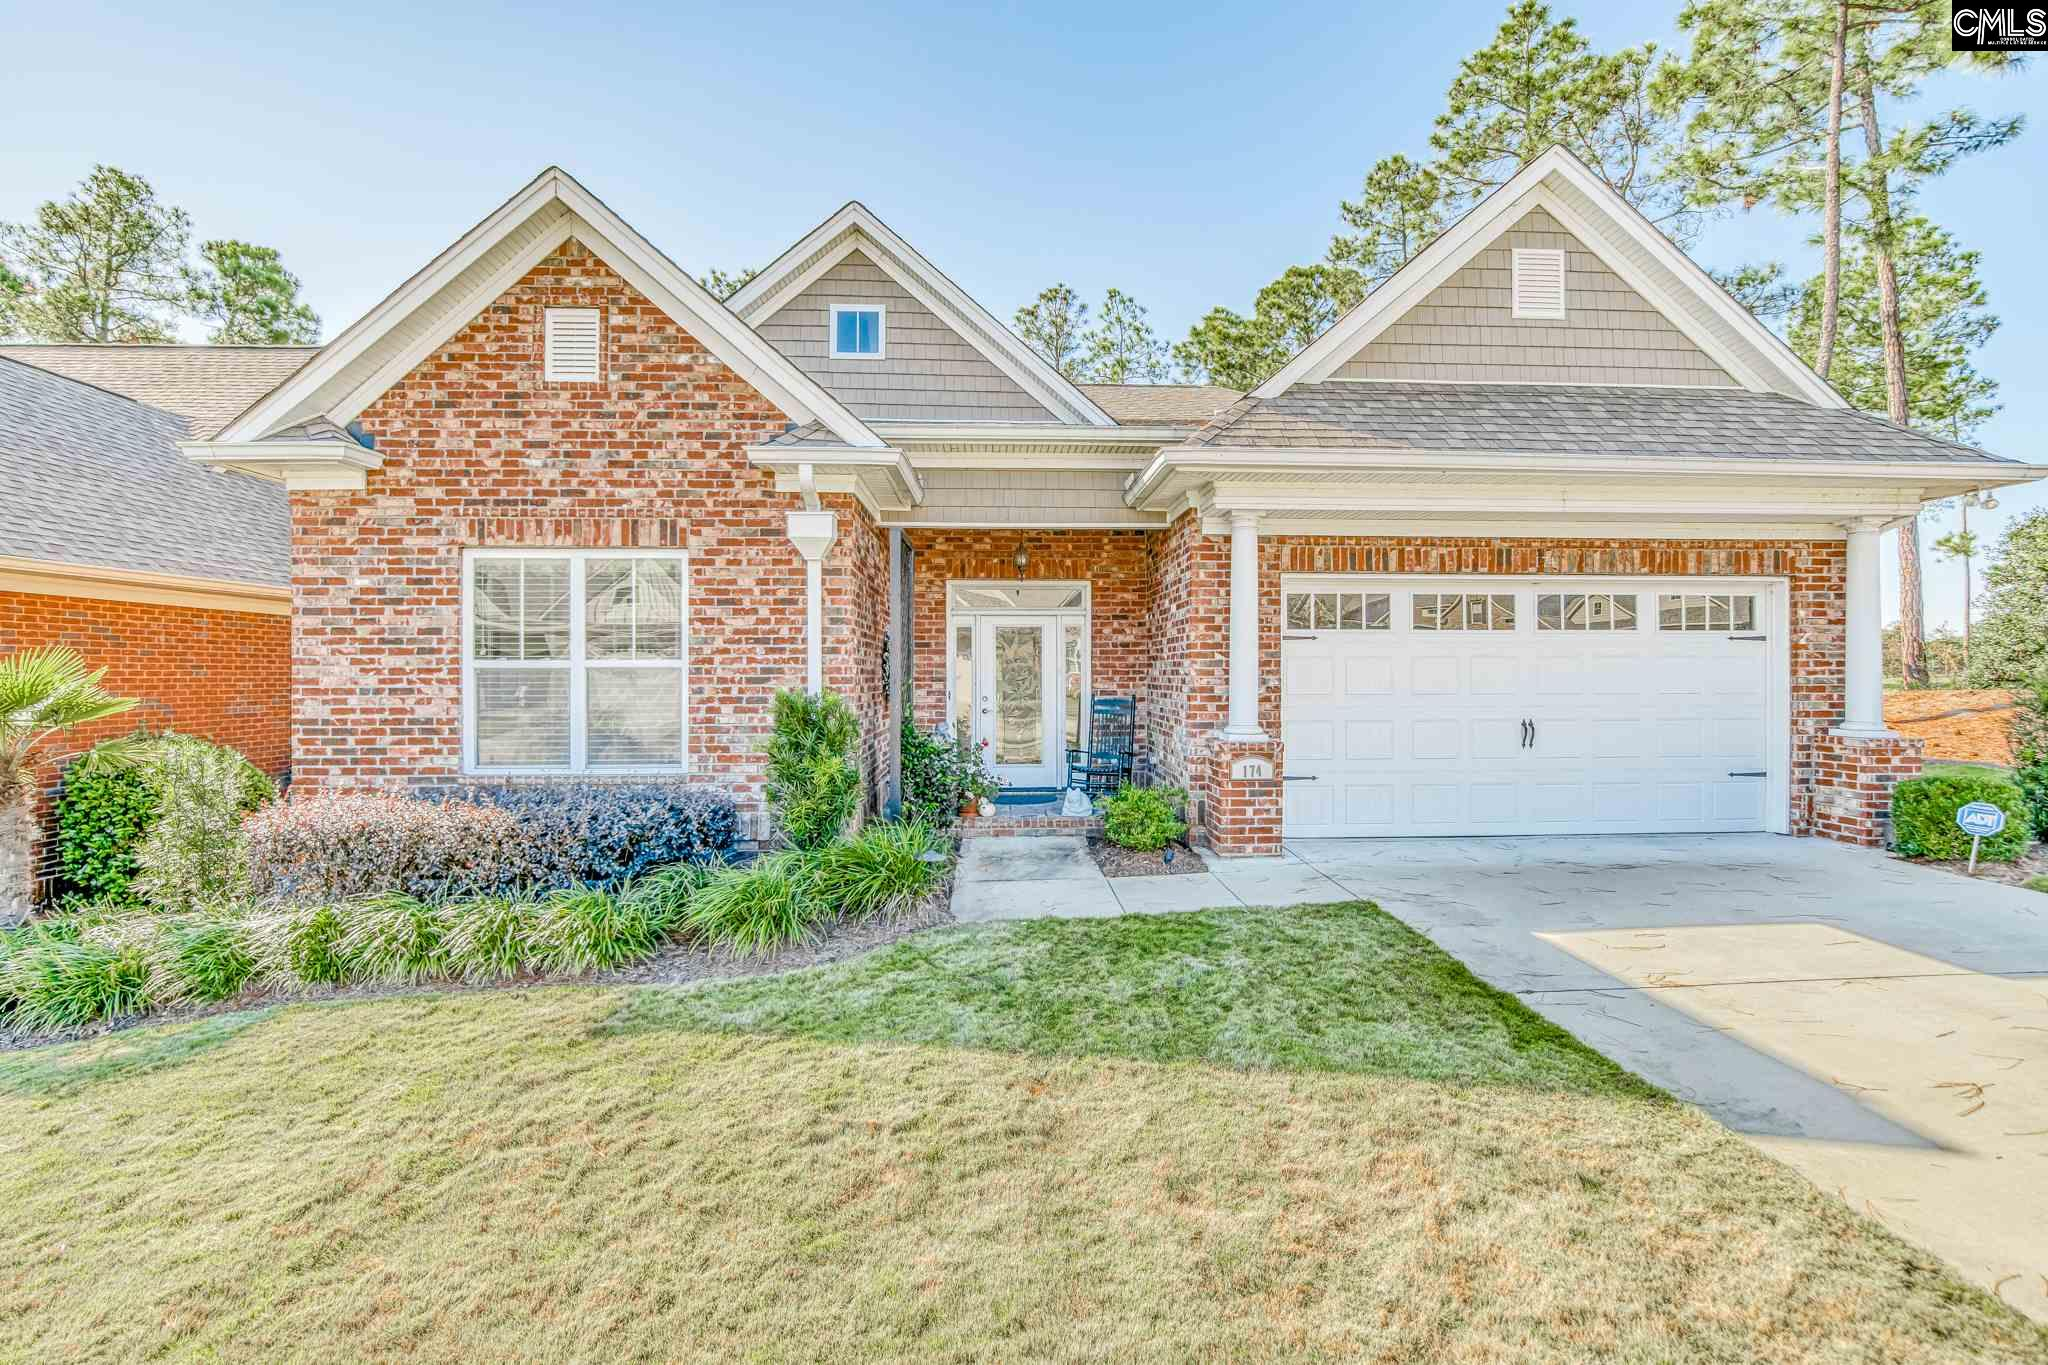 174 Golf View Bnd Elgin, SC 29045